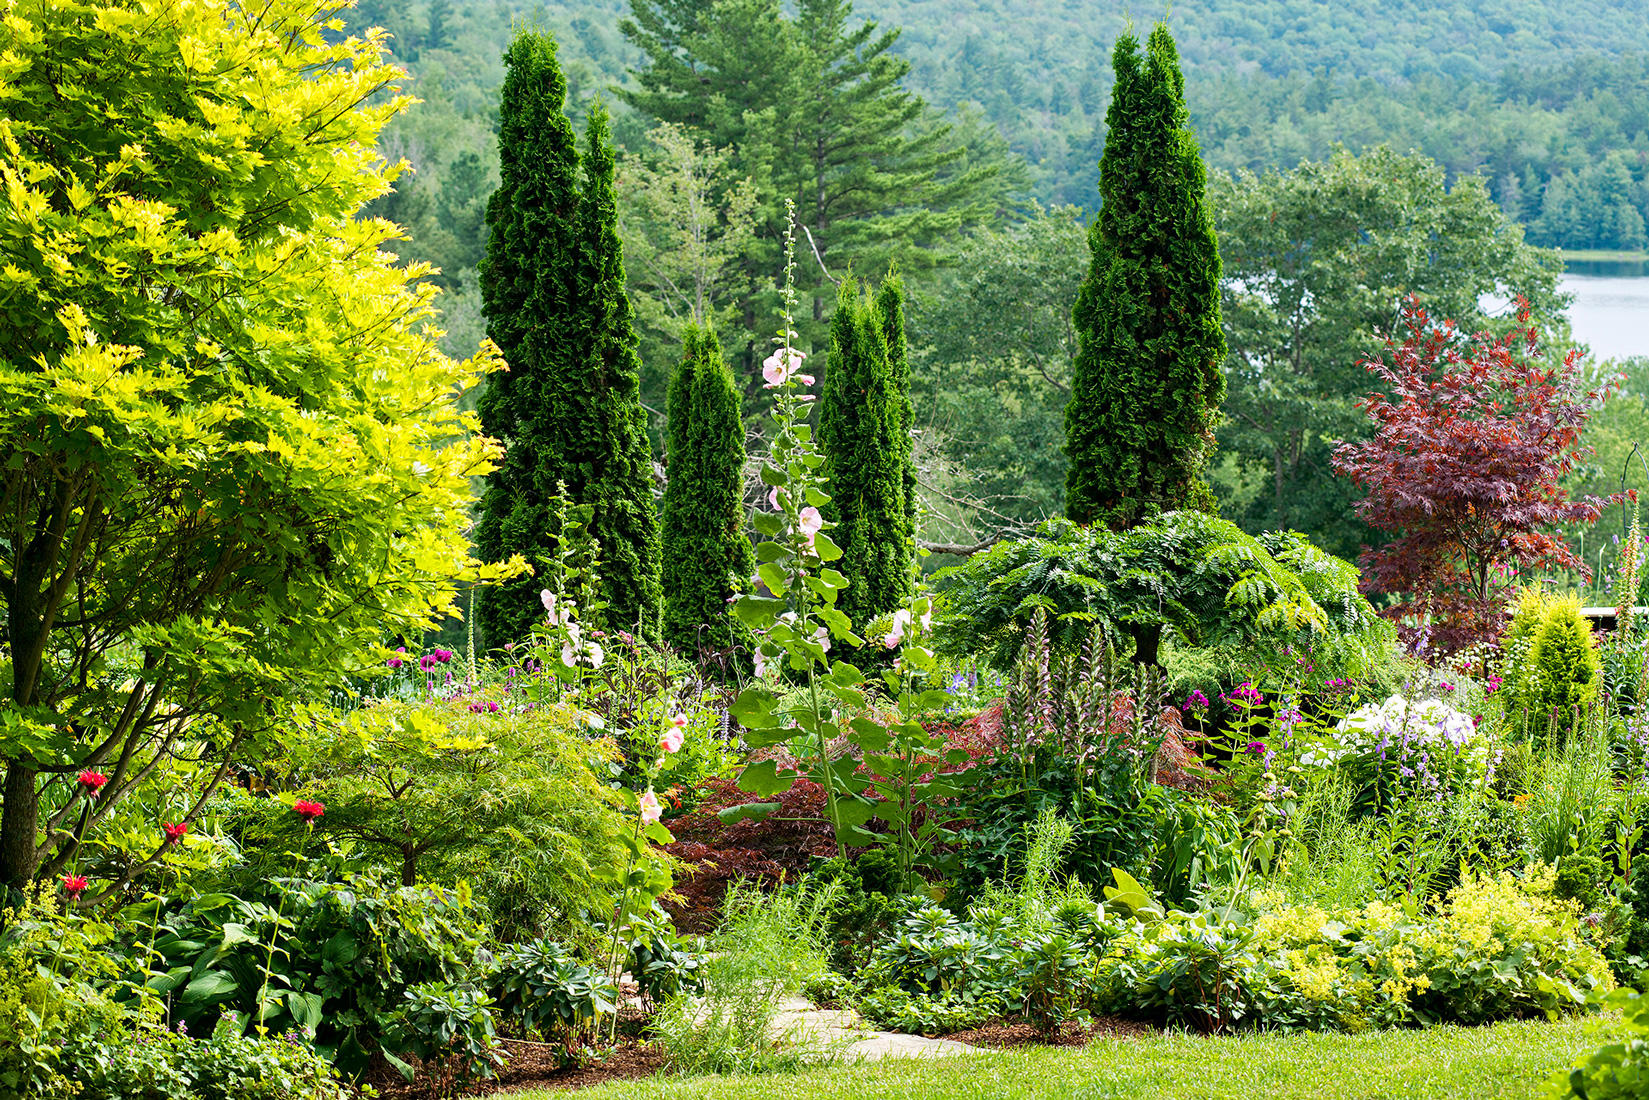 lush garden with arborvitae and maple trees